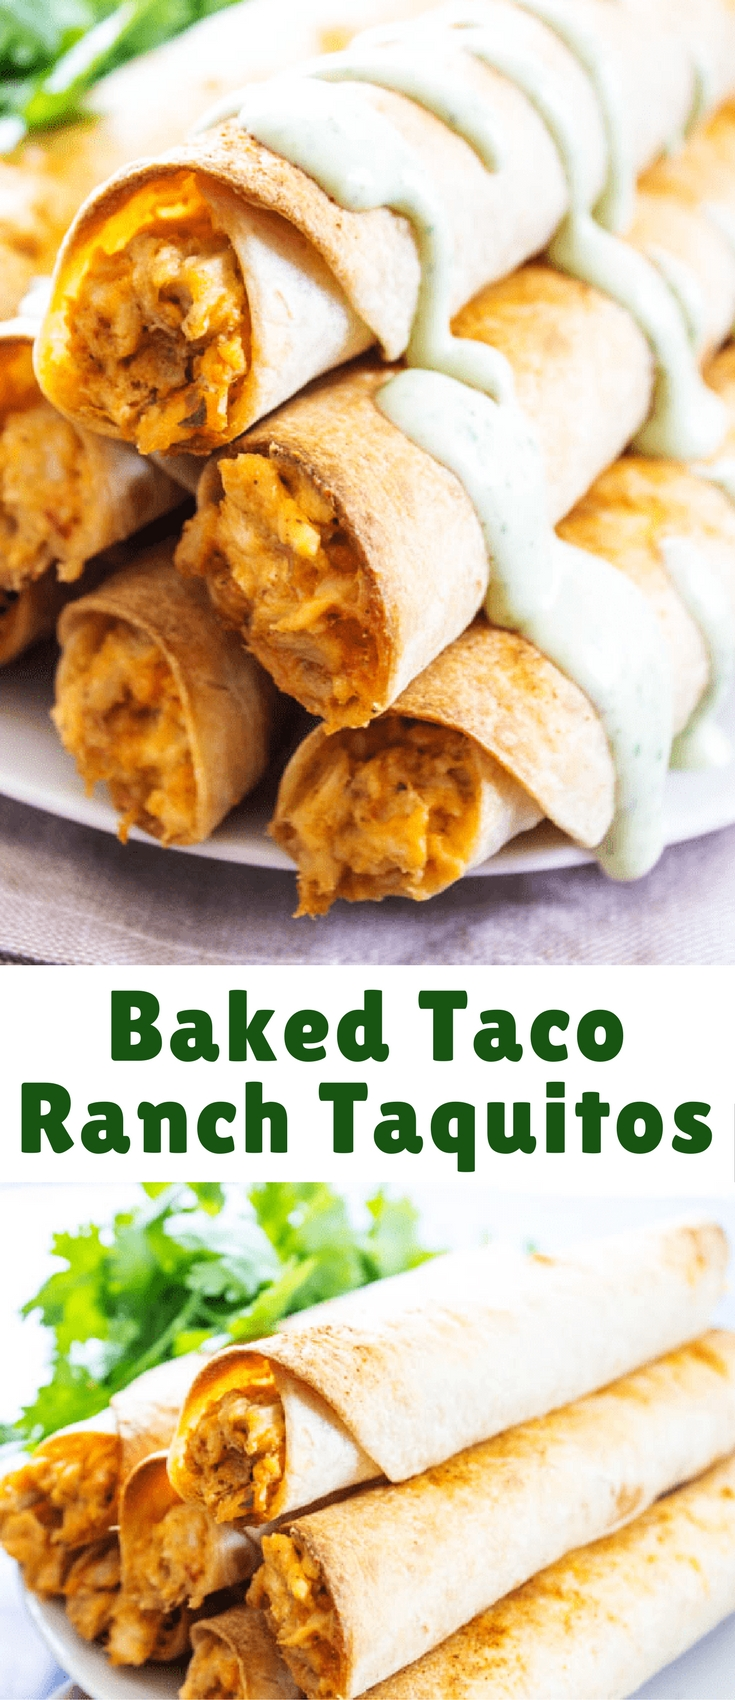 BAKED TACO RANCH TAQUITOS - Filled with a cheesy taco ranch chicken and baked to perfection, they are just perfect for any game day or holiday get together.